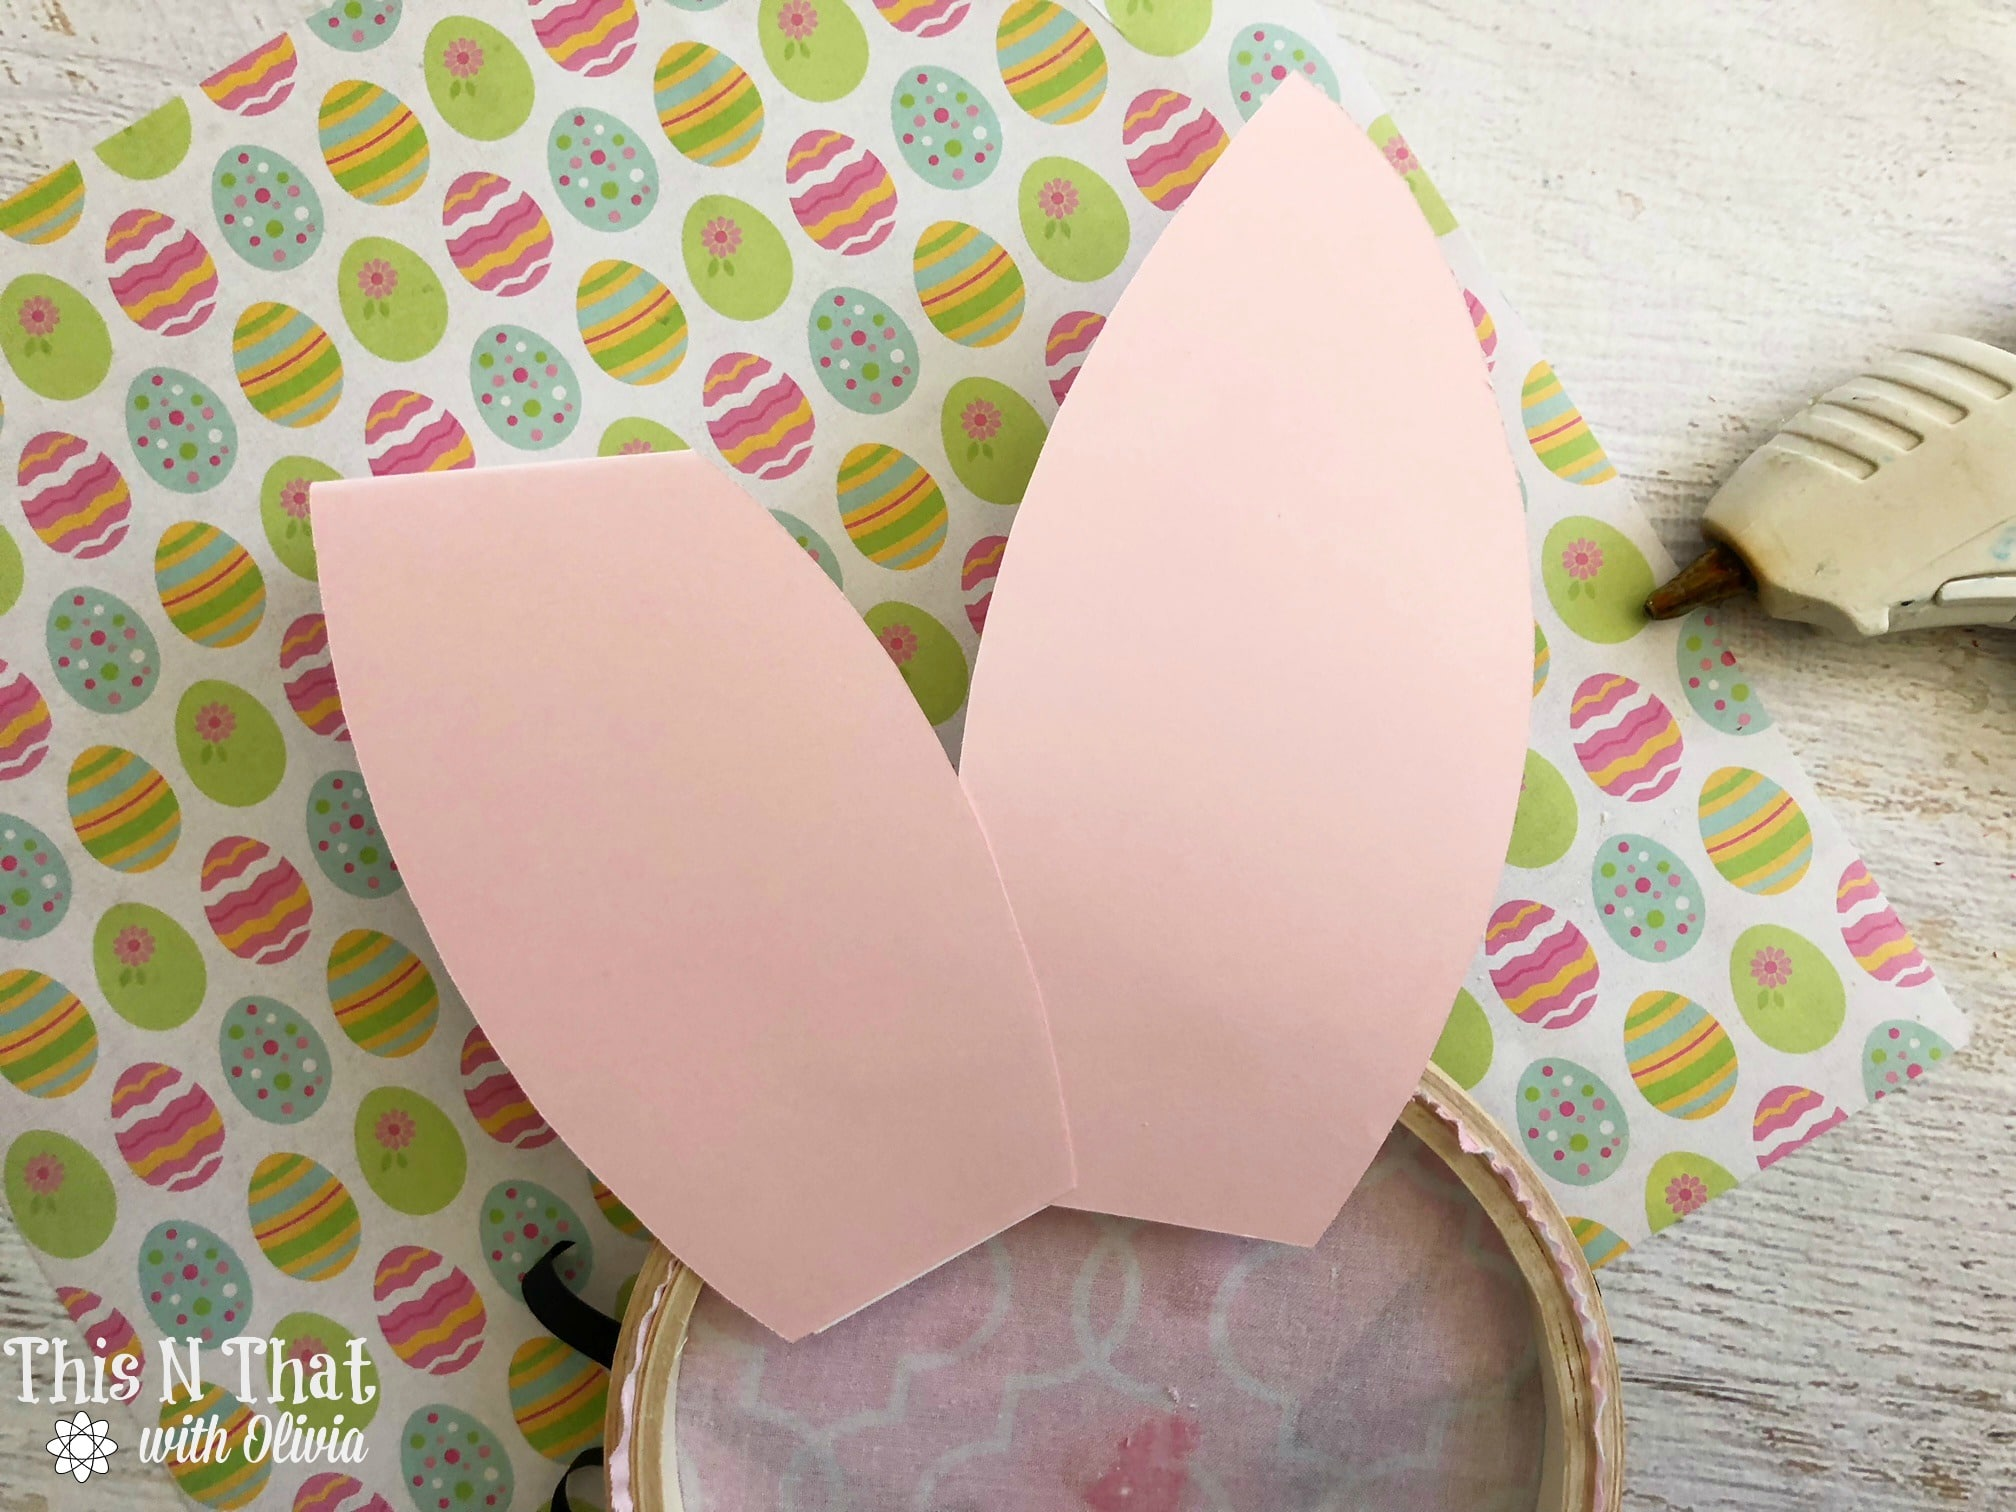 DIY Bunny Loop Craft for Easter!